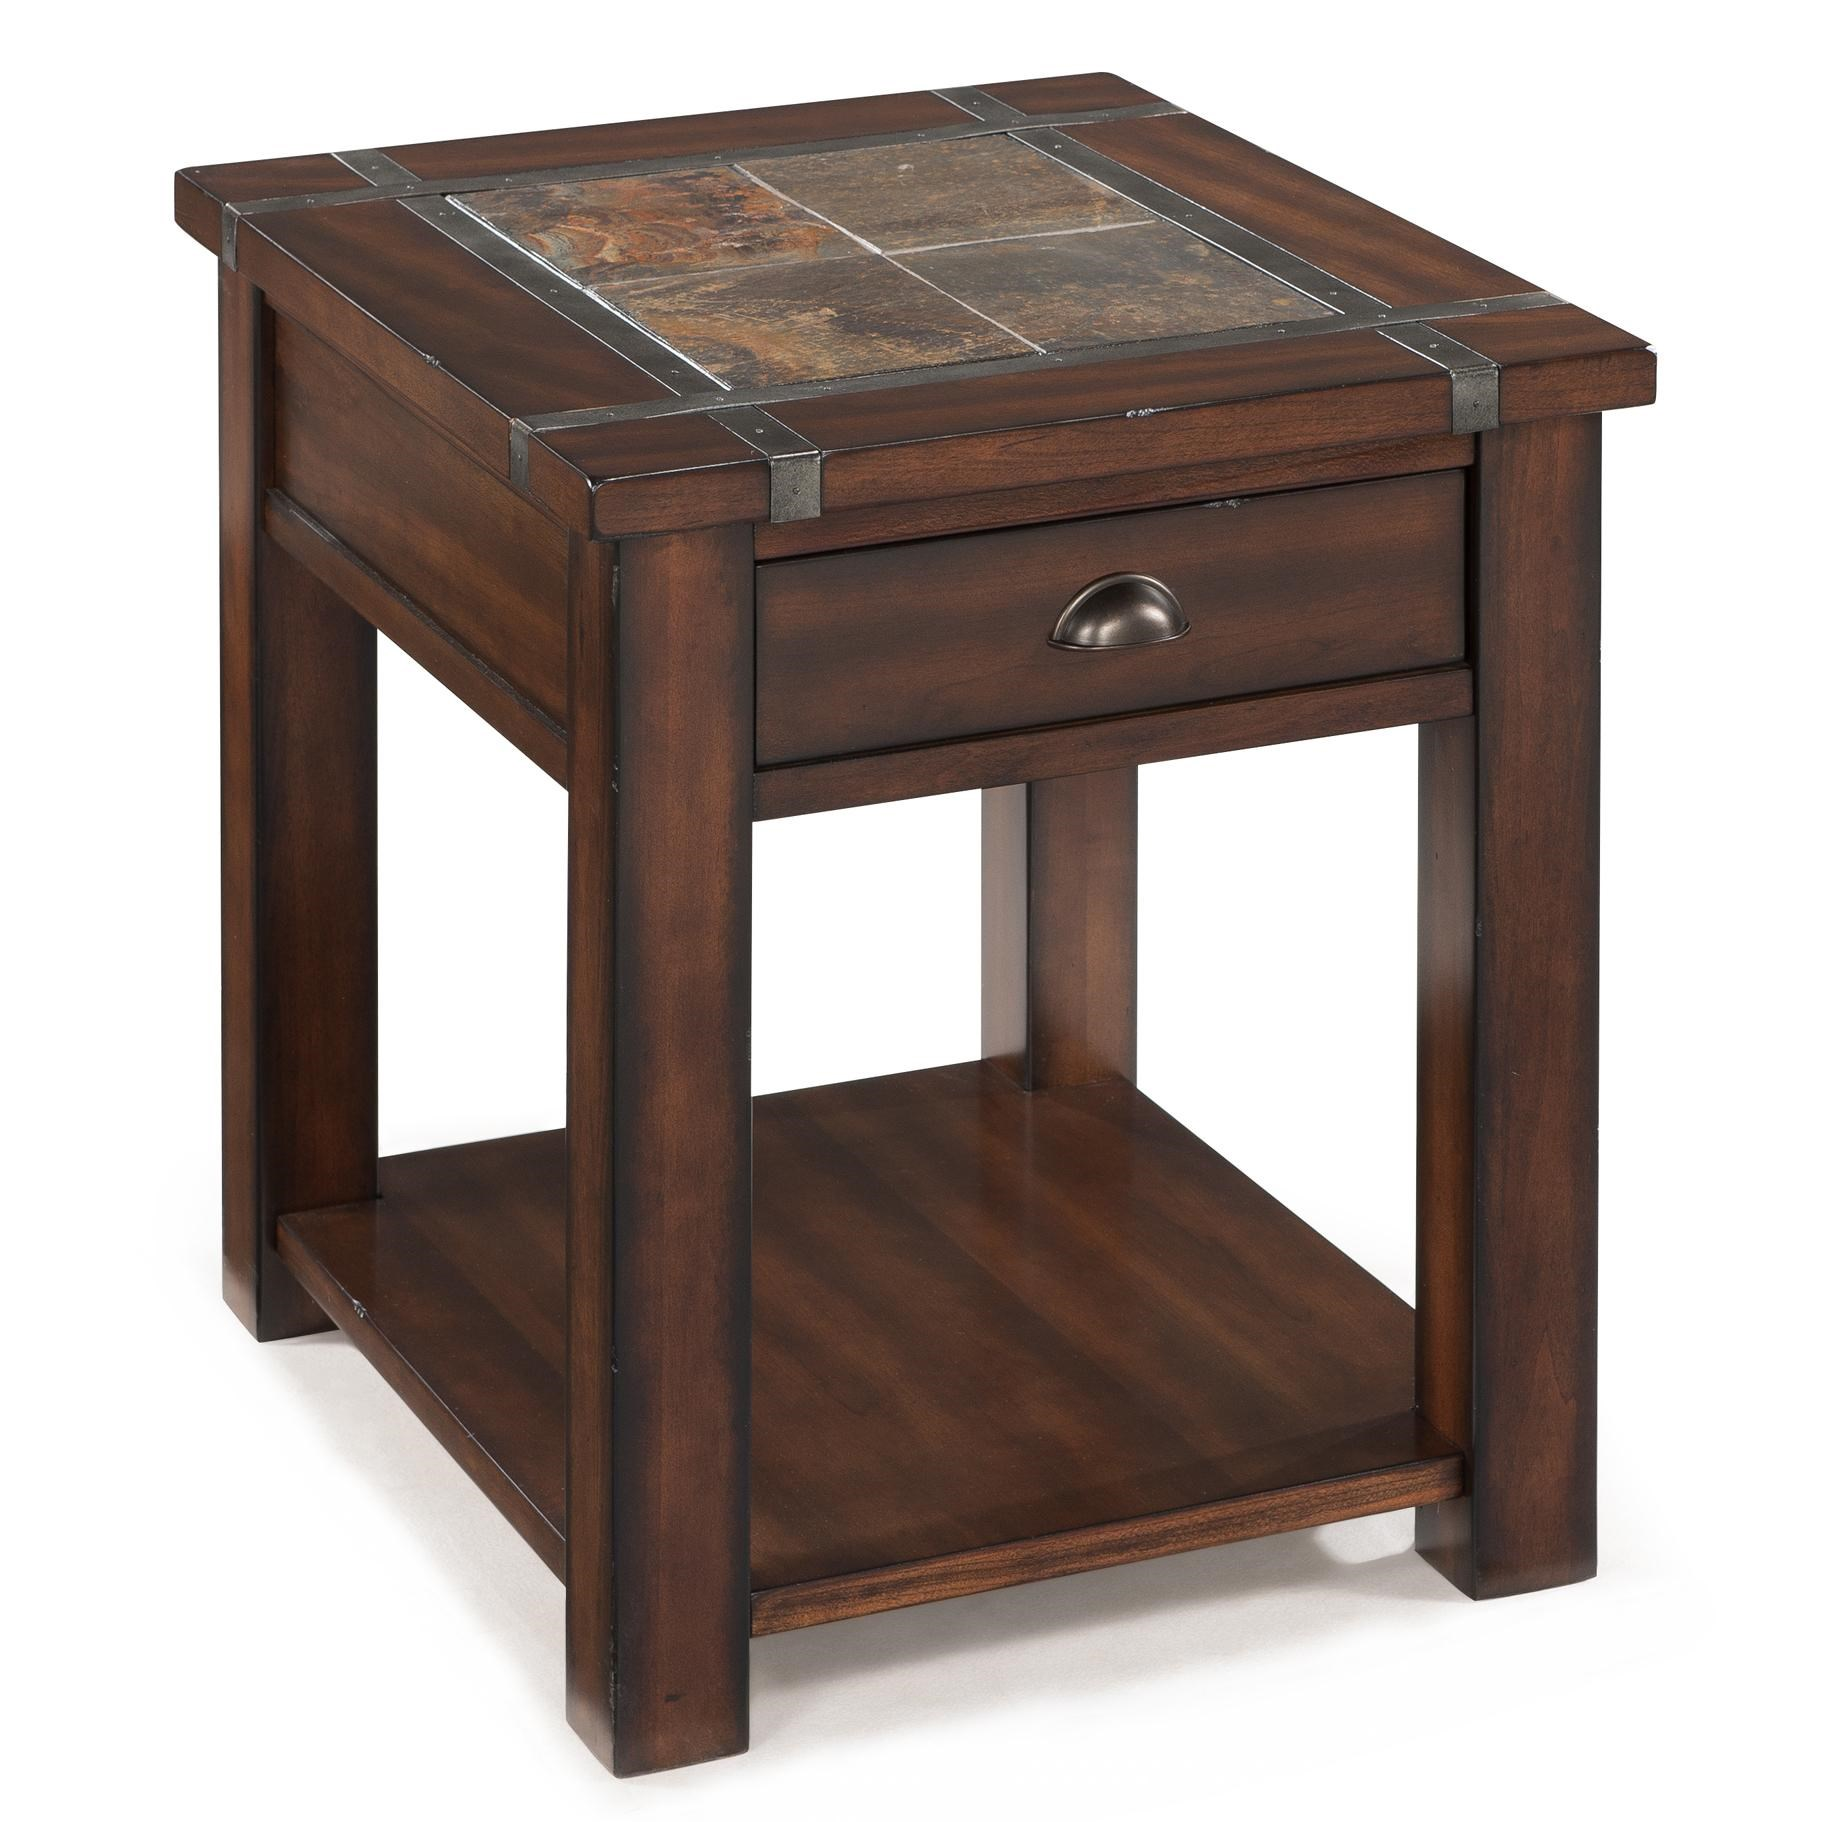 Magnussen Home Roanoke Rectangular End Table With Drawer